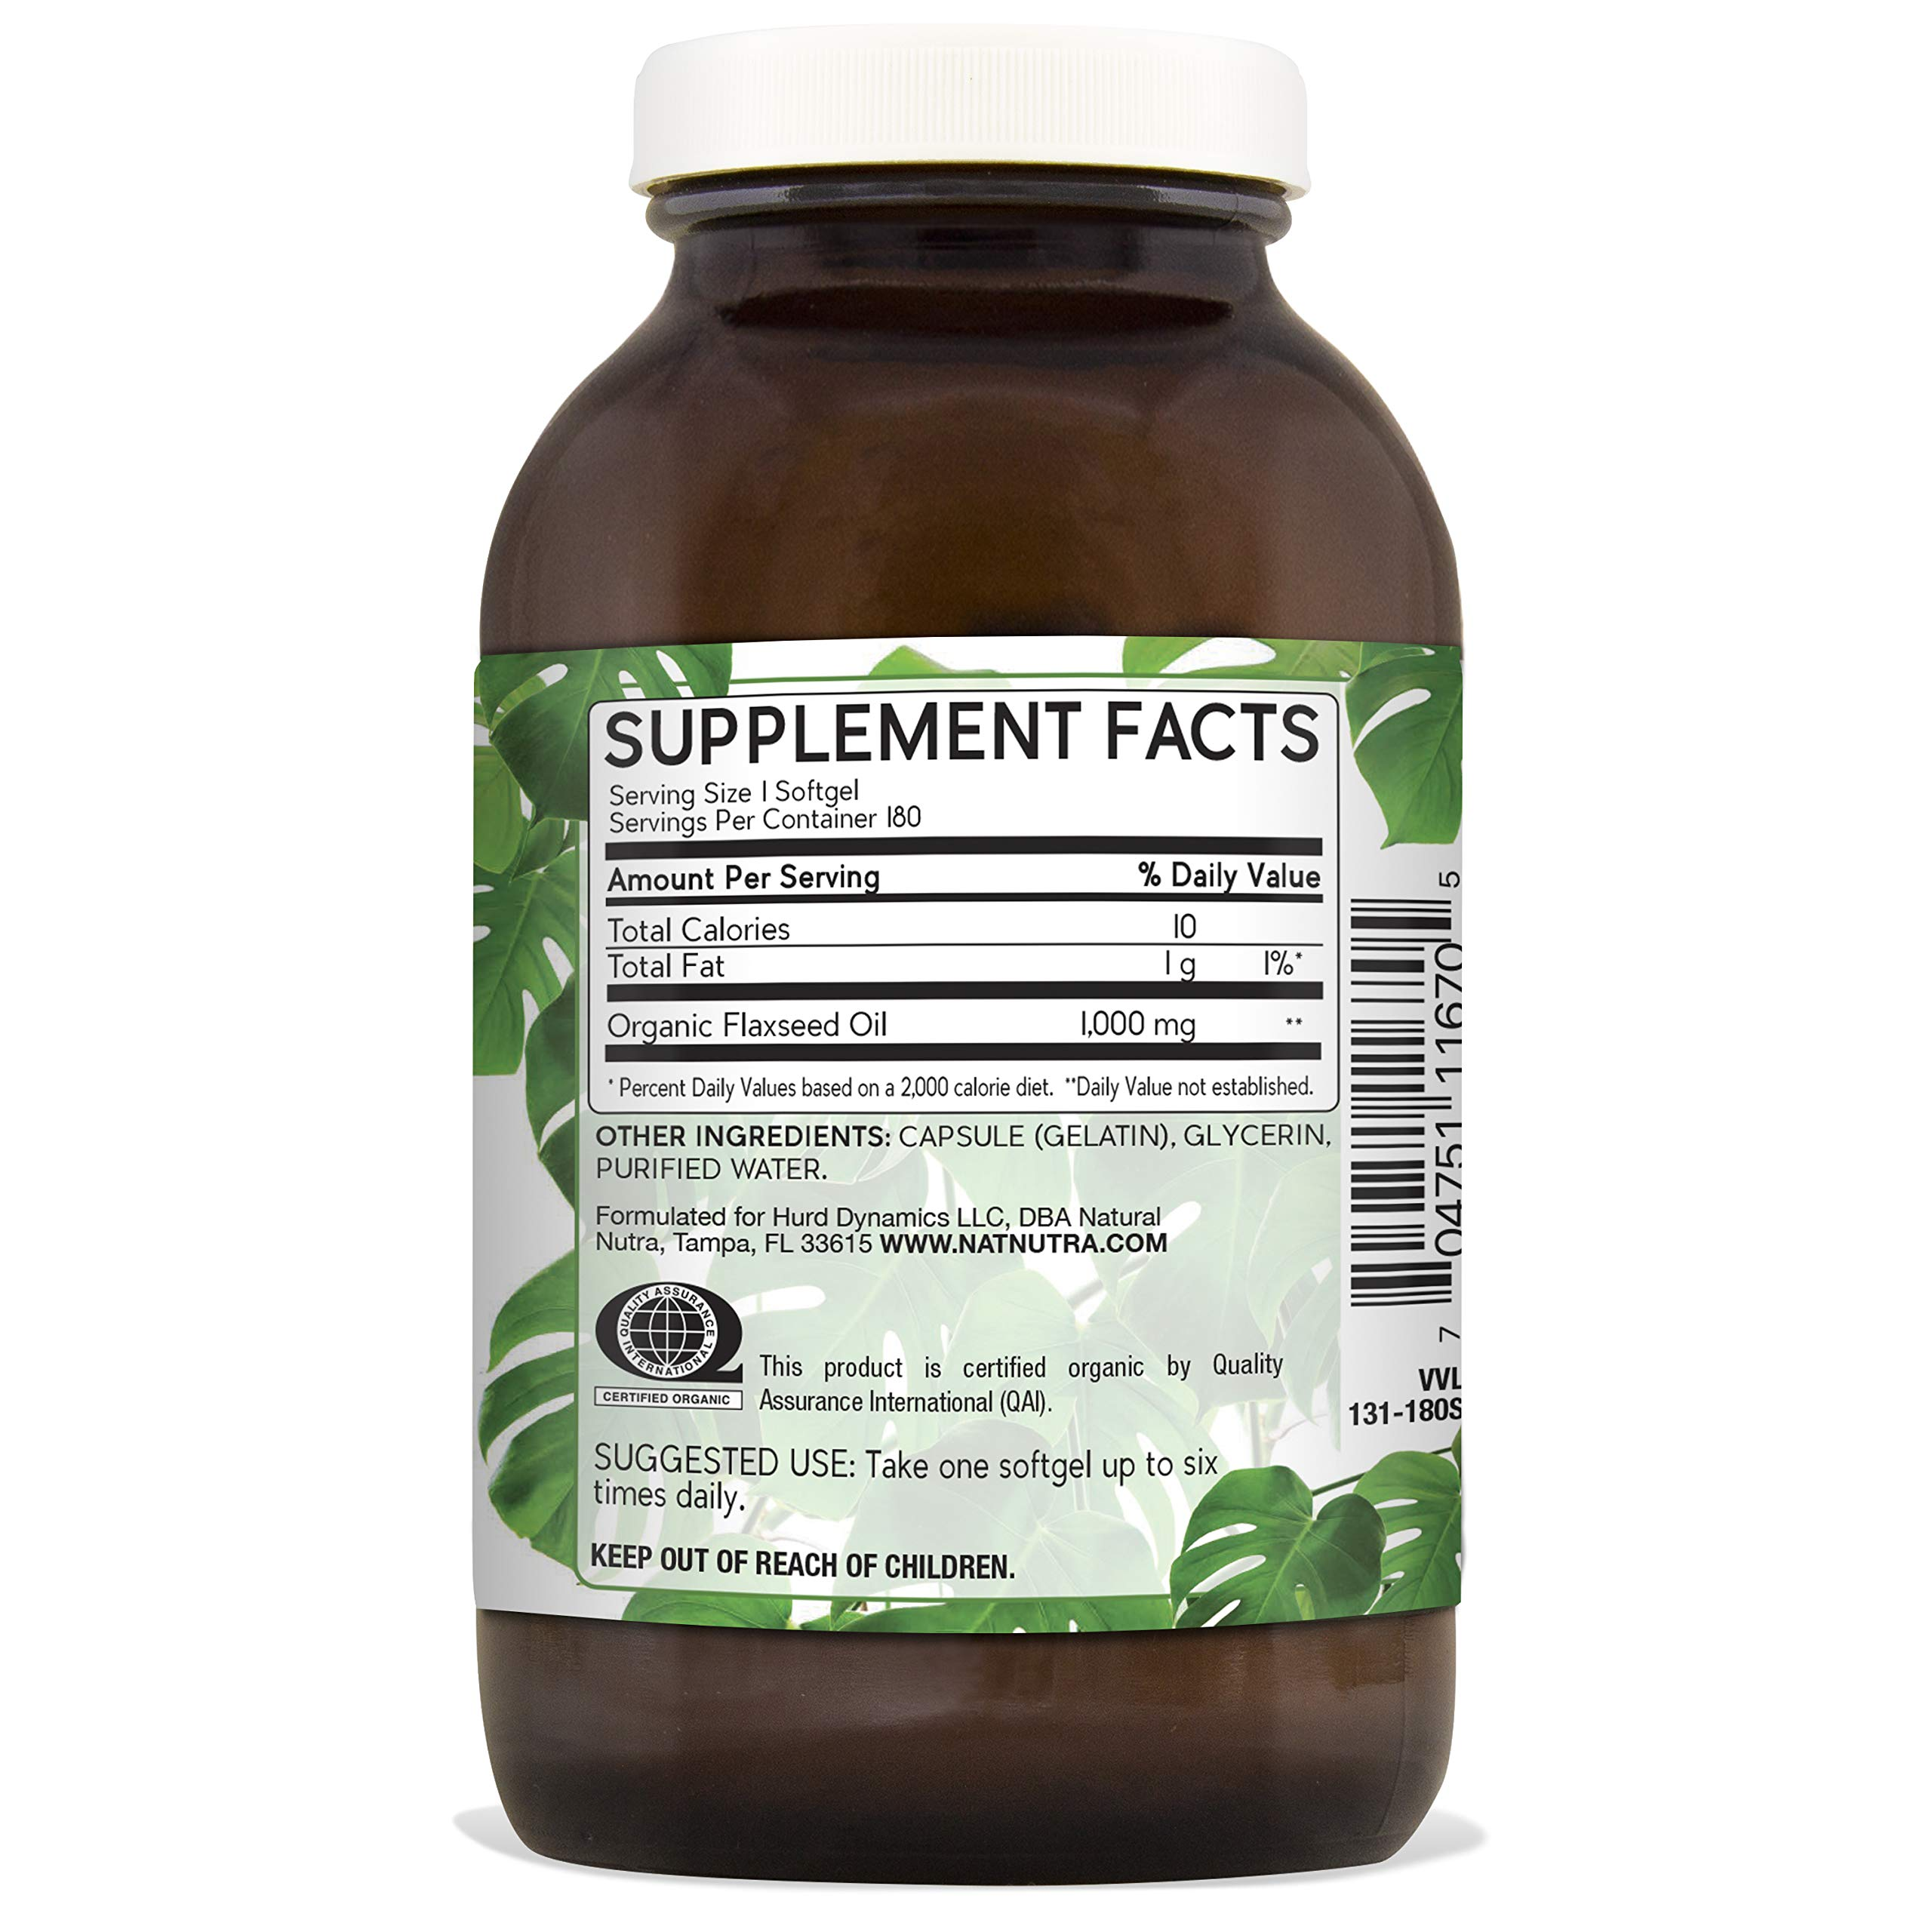 Natural Nutra Organic Flaxseed Oil Softgels, Plant Based Omega 3 6 9, Fatty Acids Supplement (ALA, LA and Oleic Acid), Cold Pressed, 1000 mg, 180 Capsules by Natural Nutraceuticals (Image #2)